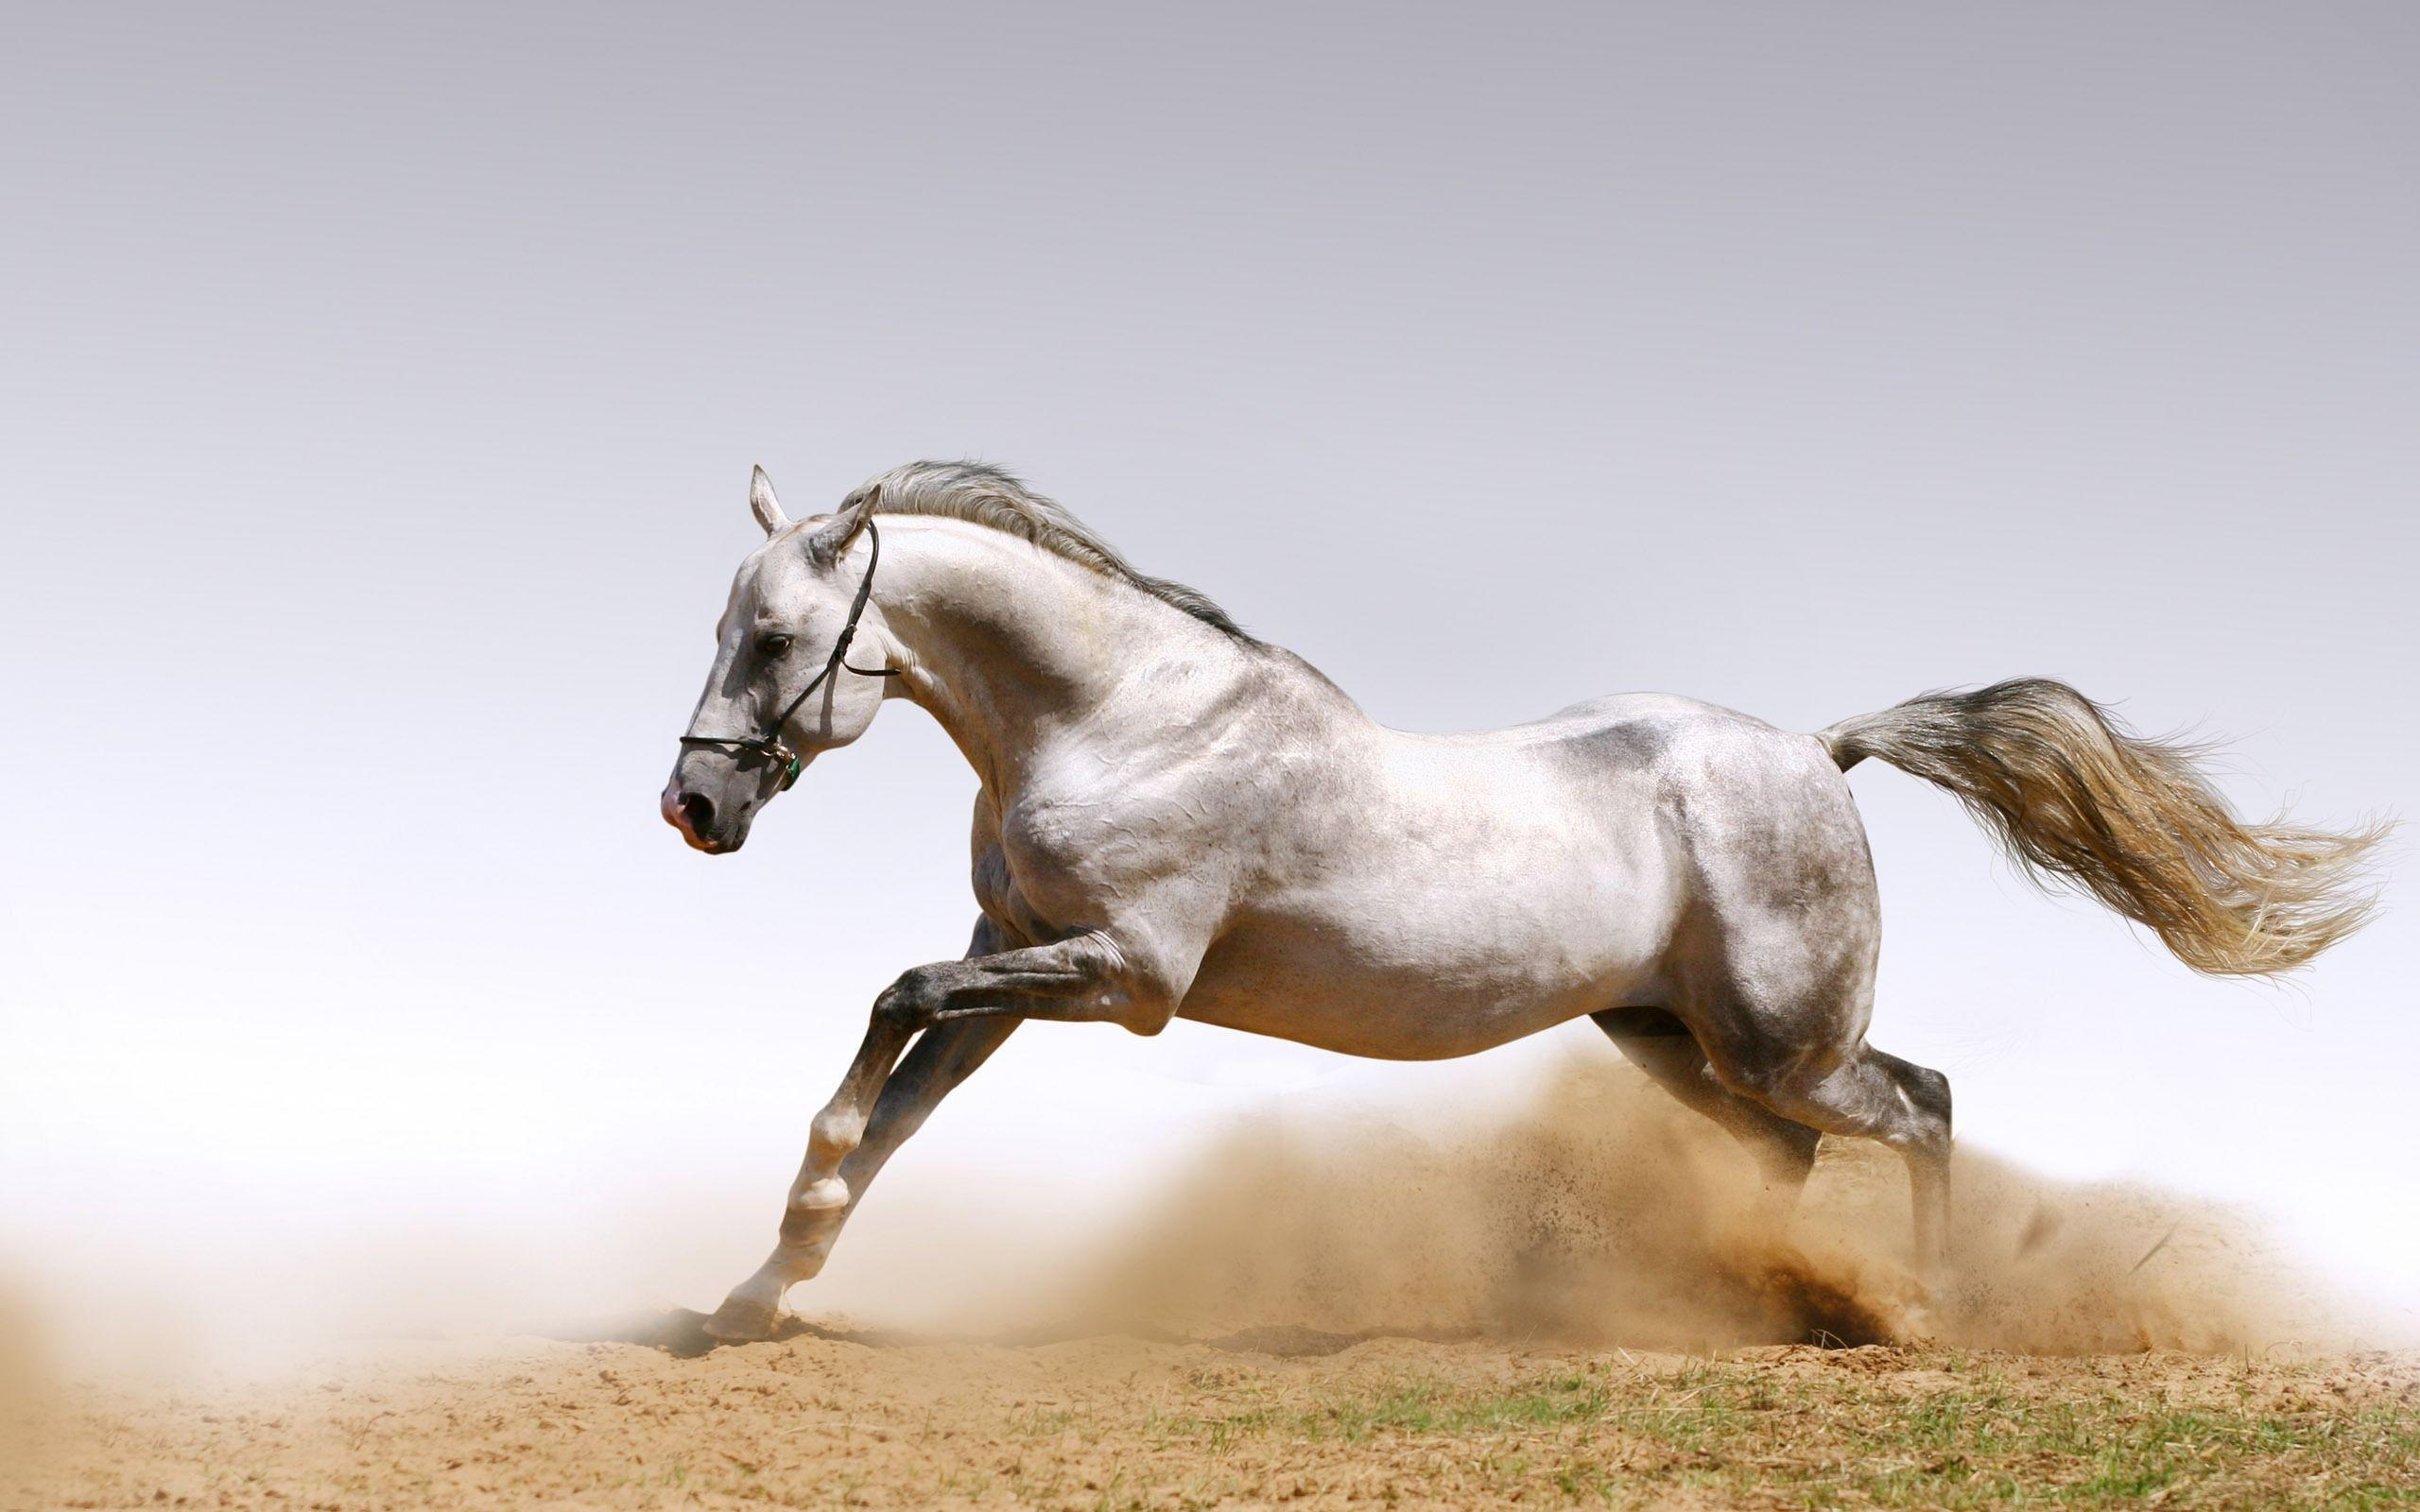 A selection of 10 Images of Horses in HD quality